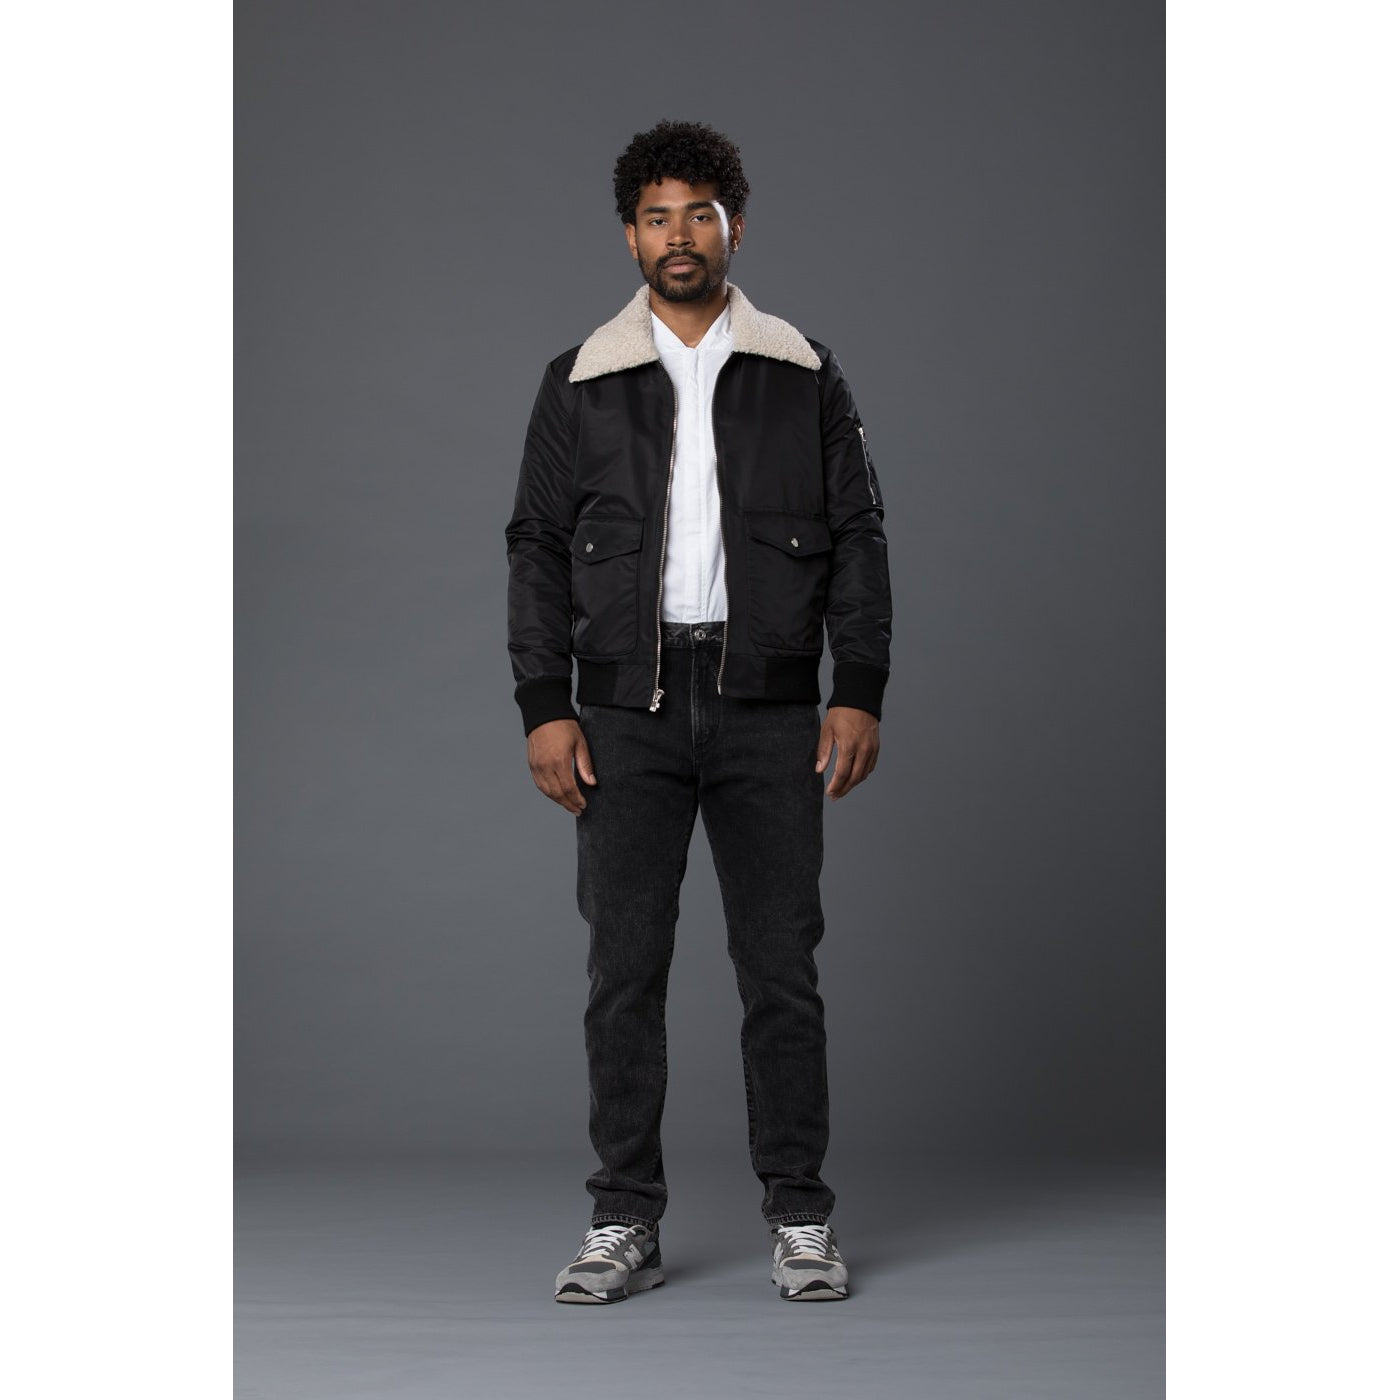 Krammer & Stoudt Black Bomber Jacket